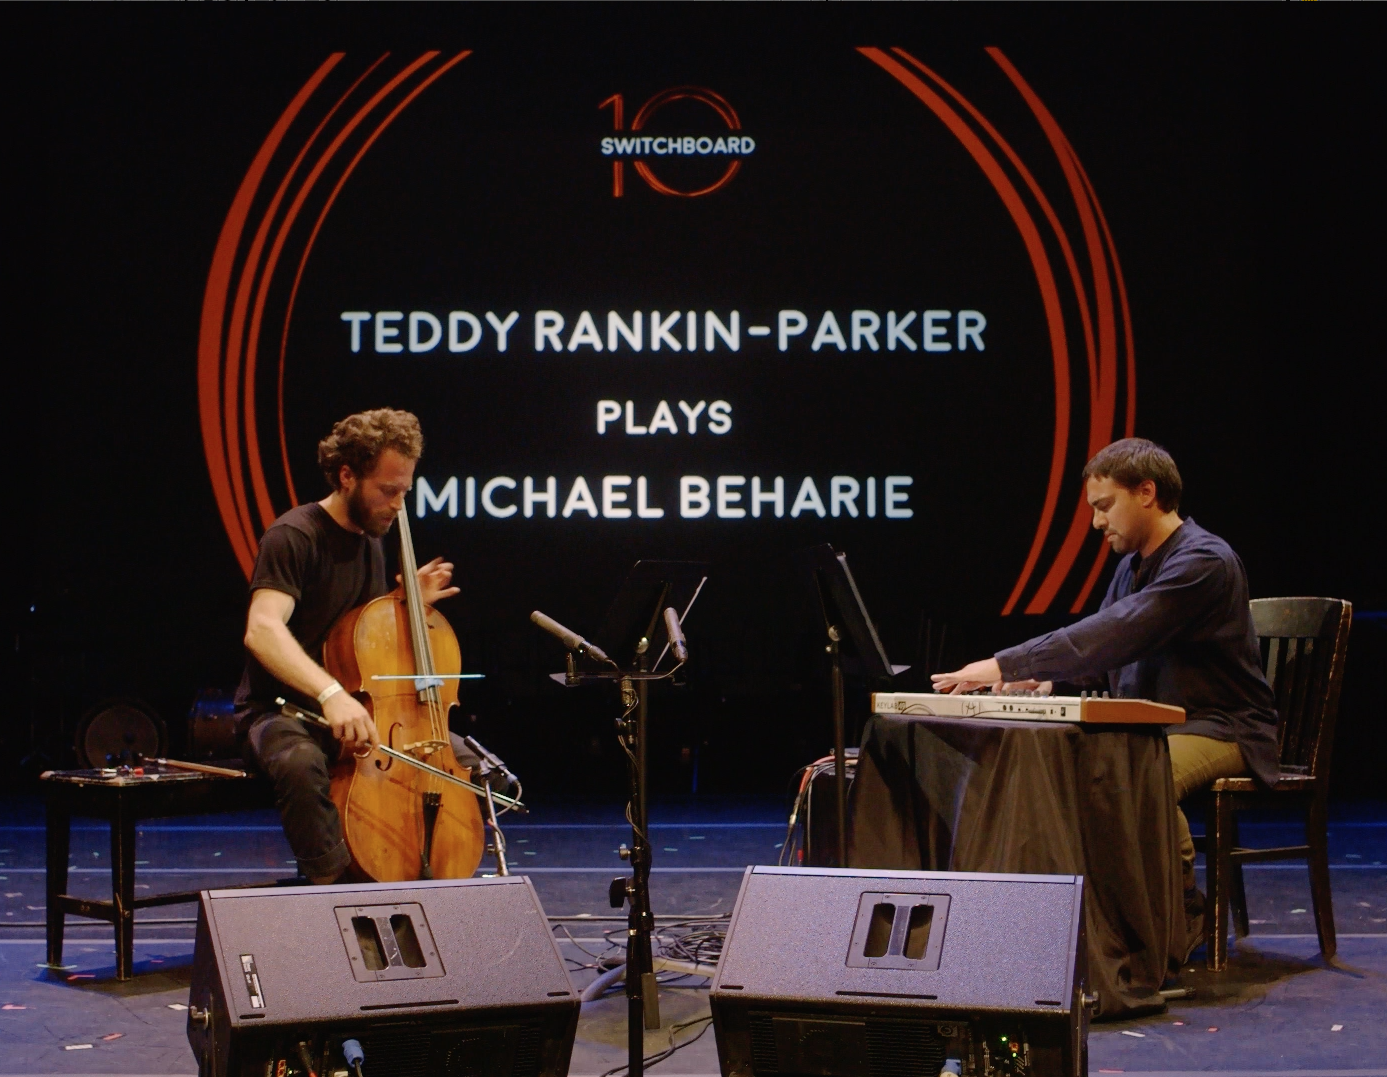 6/10/17 -- debut performance of duo piece for Teddy Rankin-Parker at Switchboard Music Festival (San Francisco)